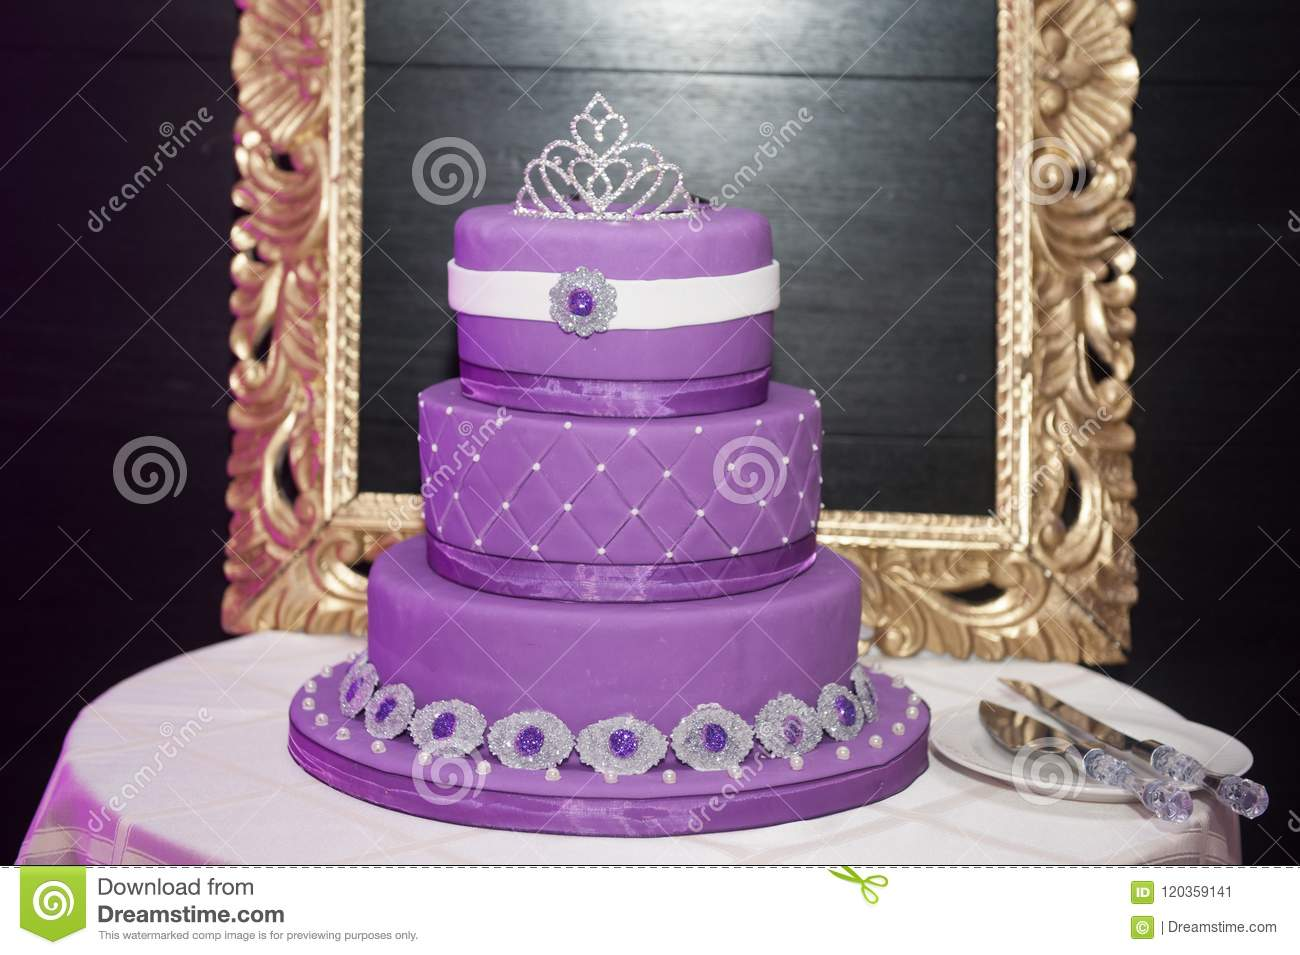 Sweet Sixteen Birthday Cake On A Stand For Young Girls Coming Of Age Celebration